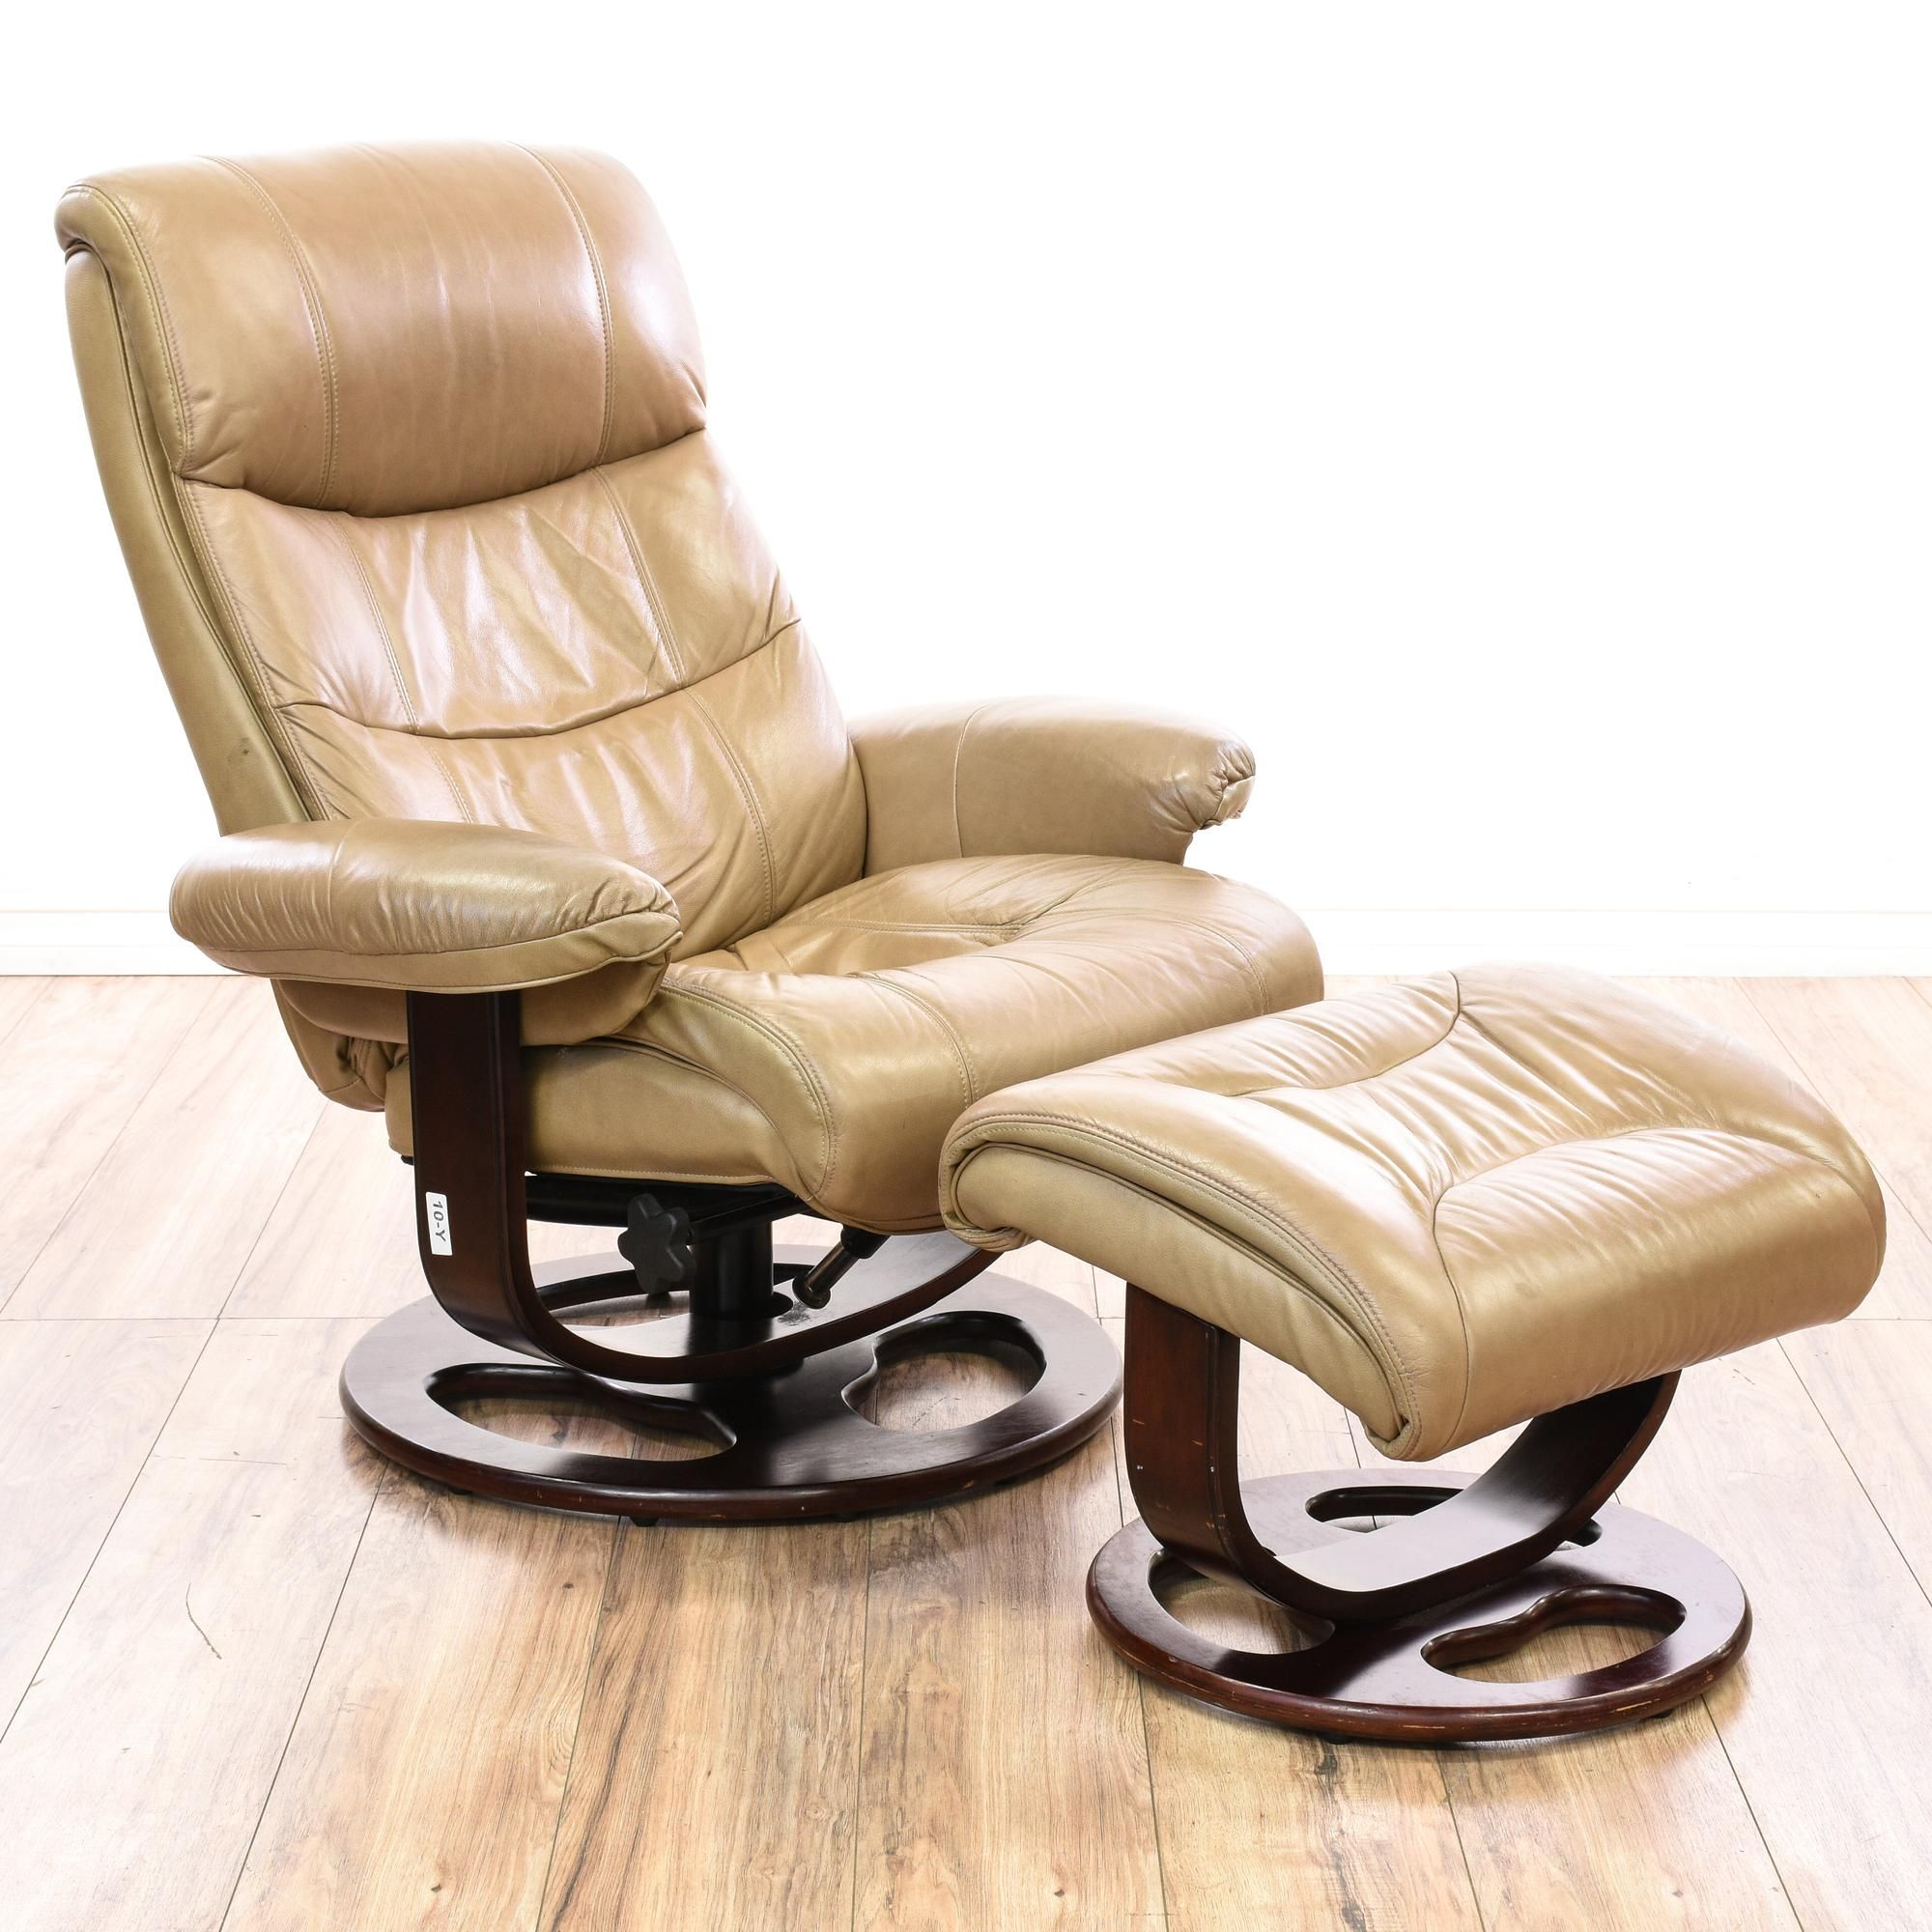 This  Lane  recliner and ottoman are upholstered in a durable tan vinyl. This  sc 1 st  Pinterest & This